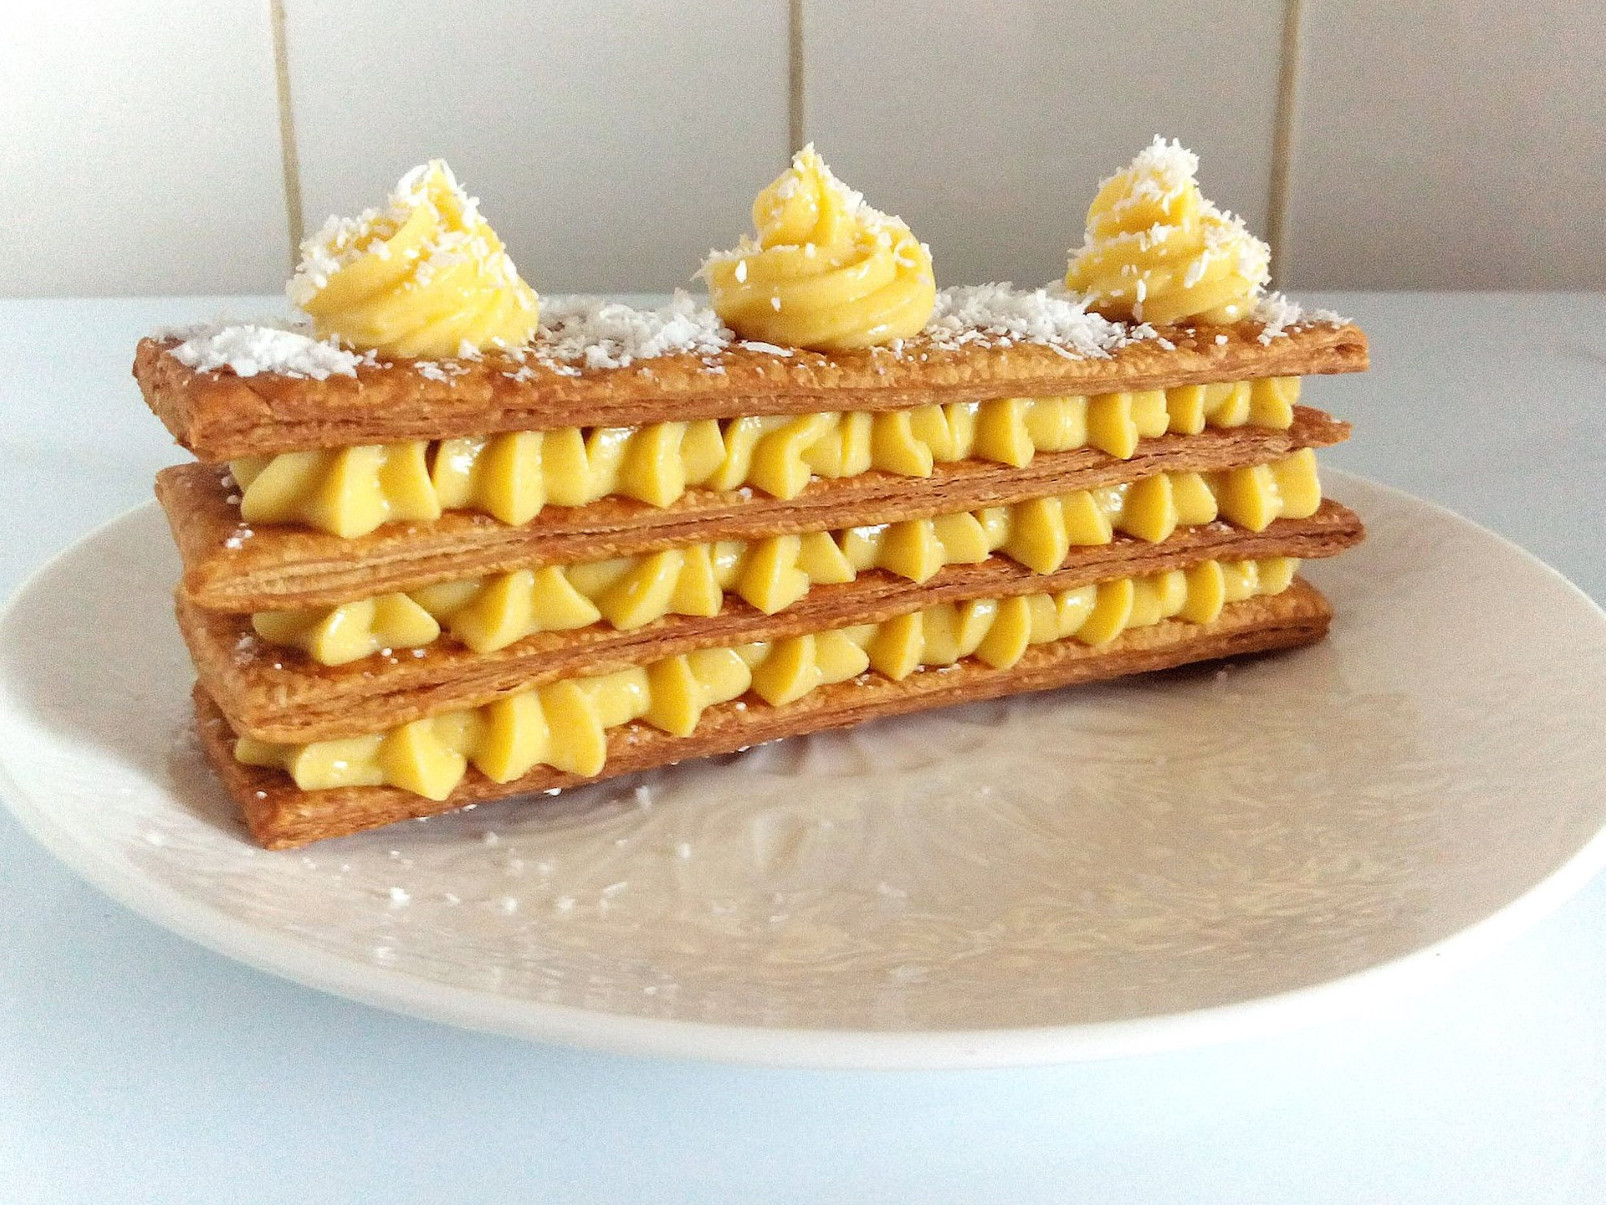 tounsia.Net : Mille-feuille citron gingembre